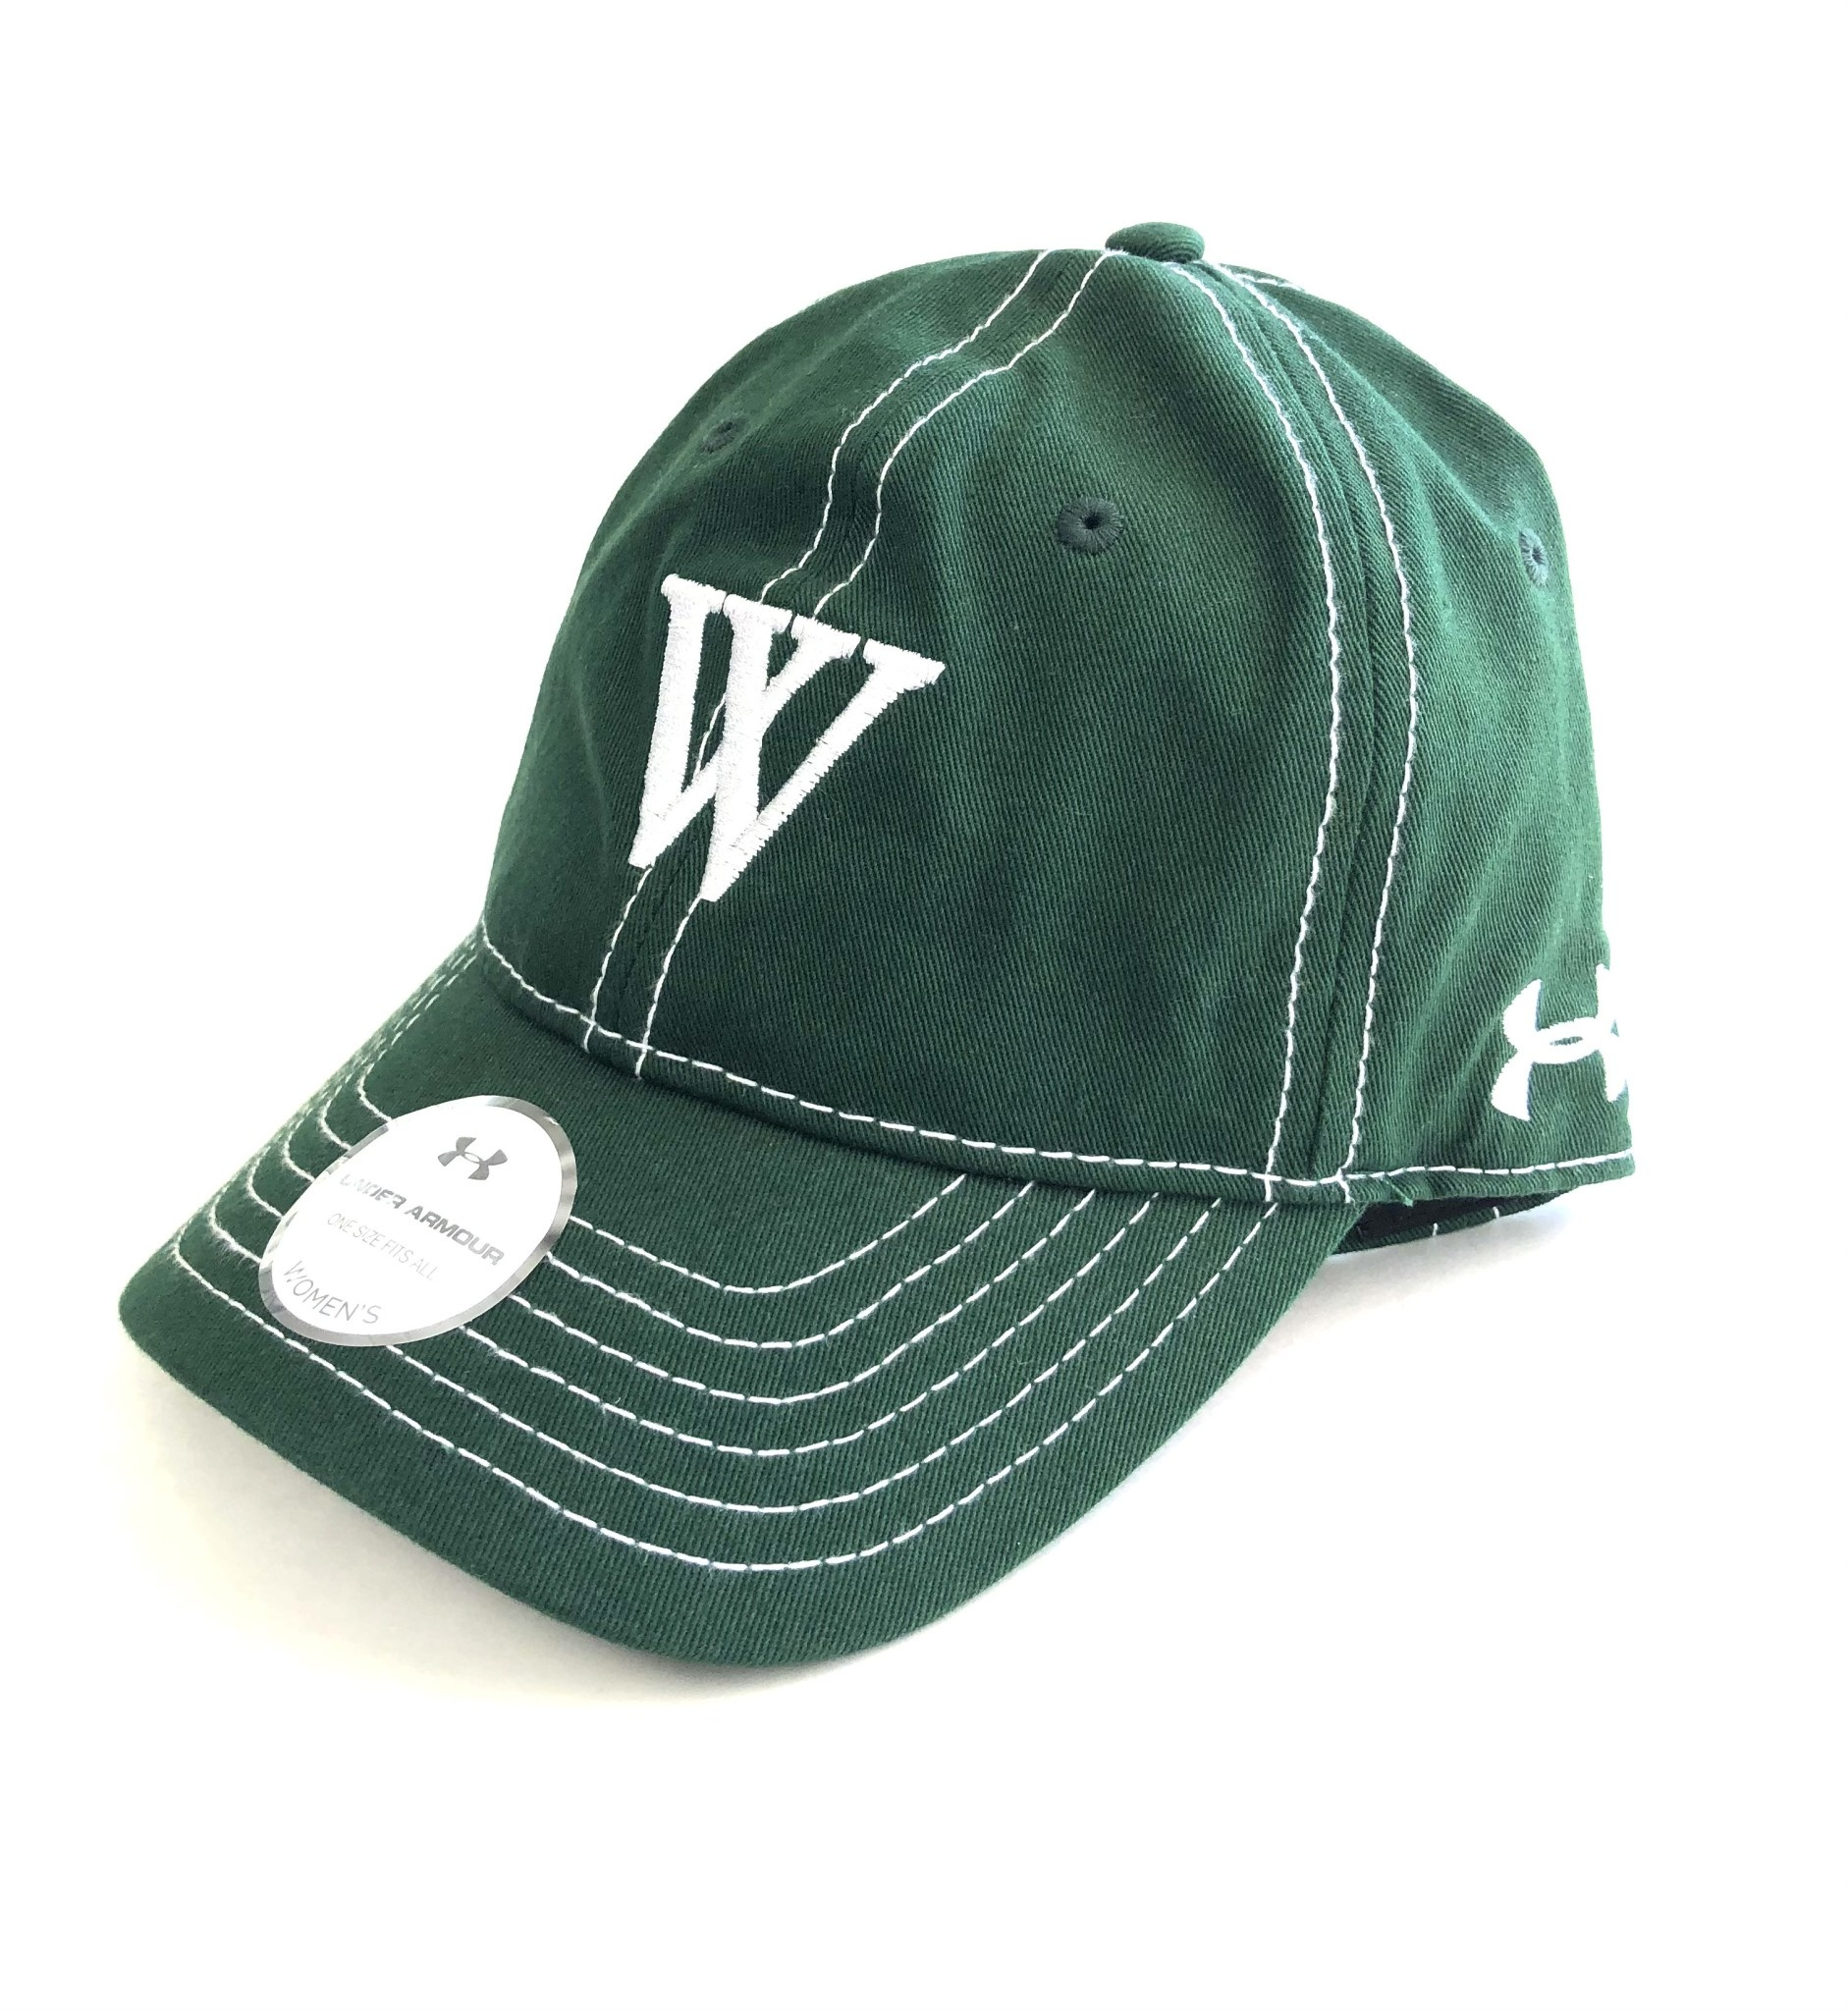 Under Armour Hat: UA Womens Garment washed green with W